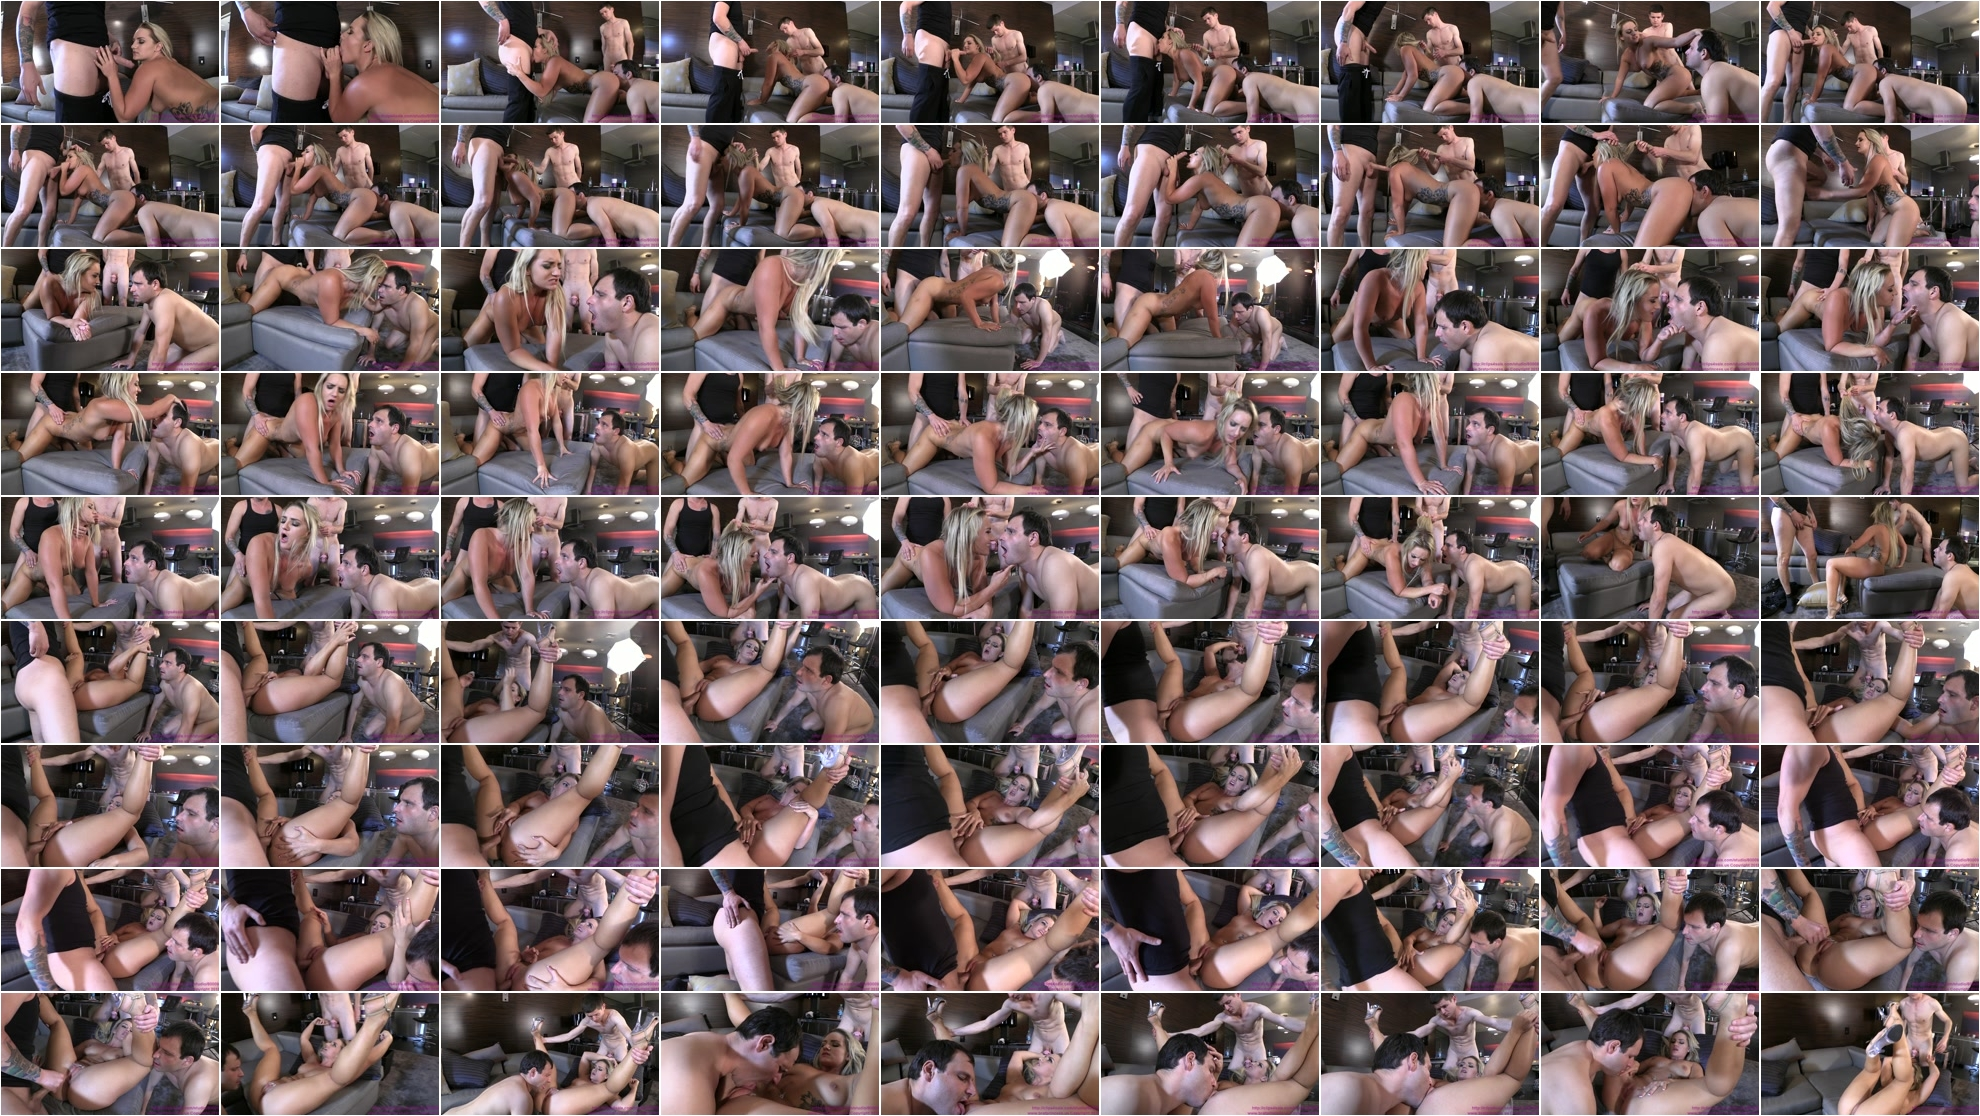 Cali_Carter_-_Fucked_By_Stud_With_Two_Chastity_Cucks_Serving.C3,